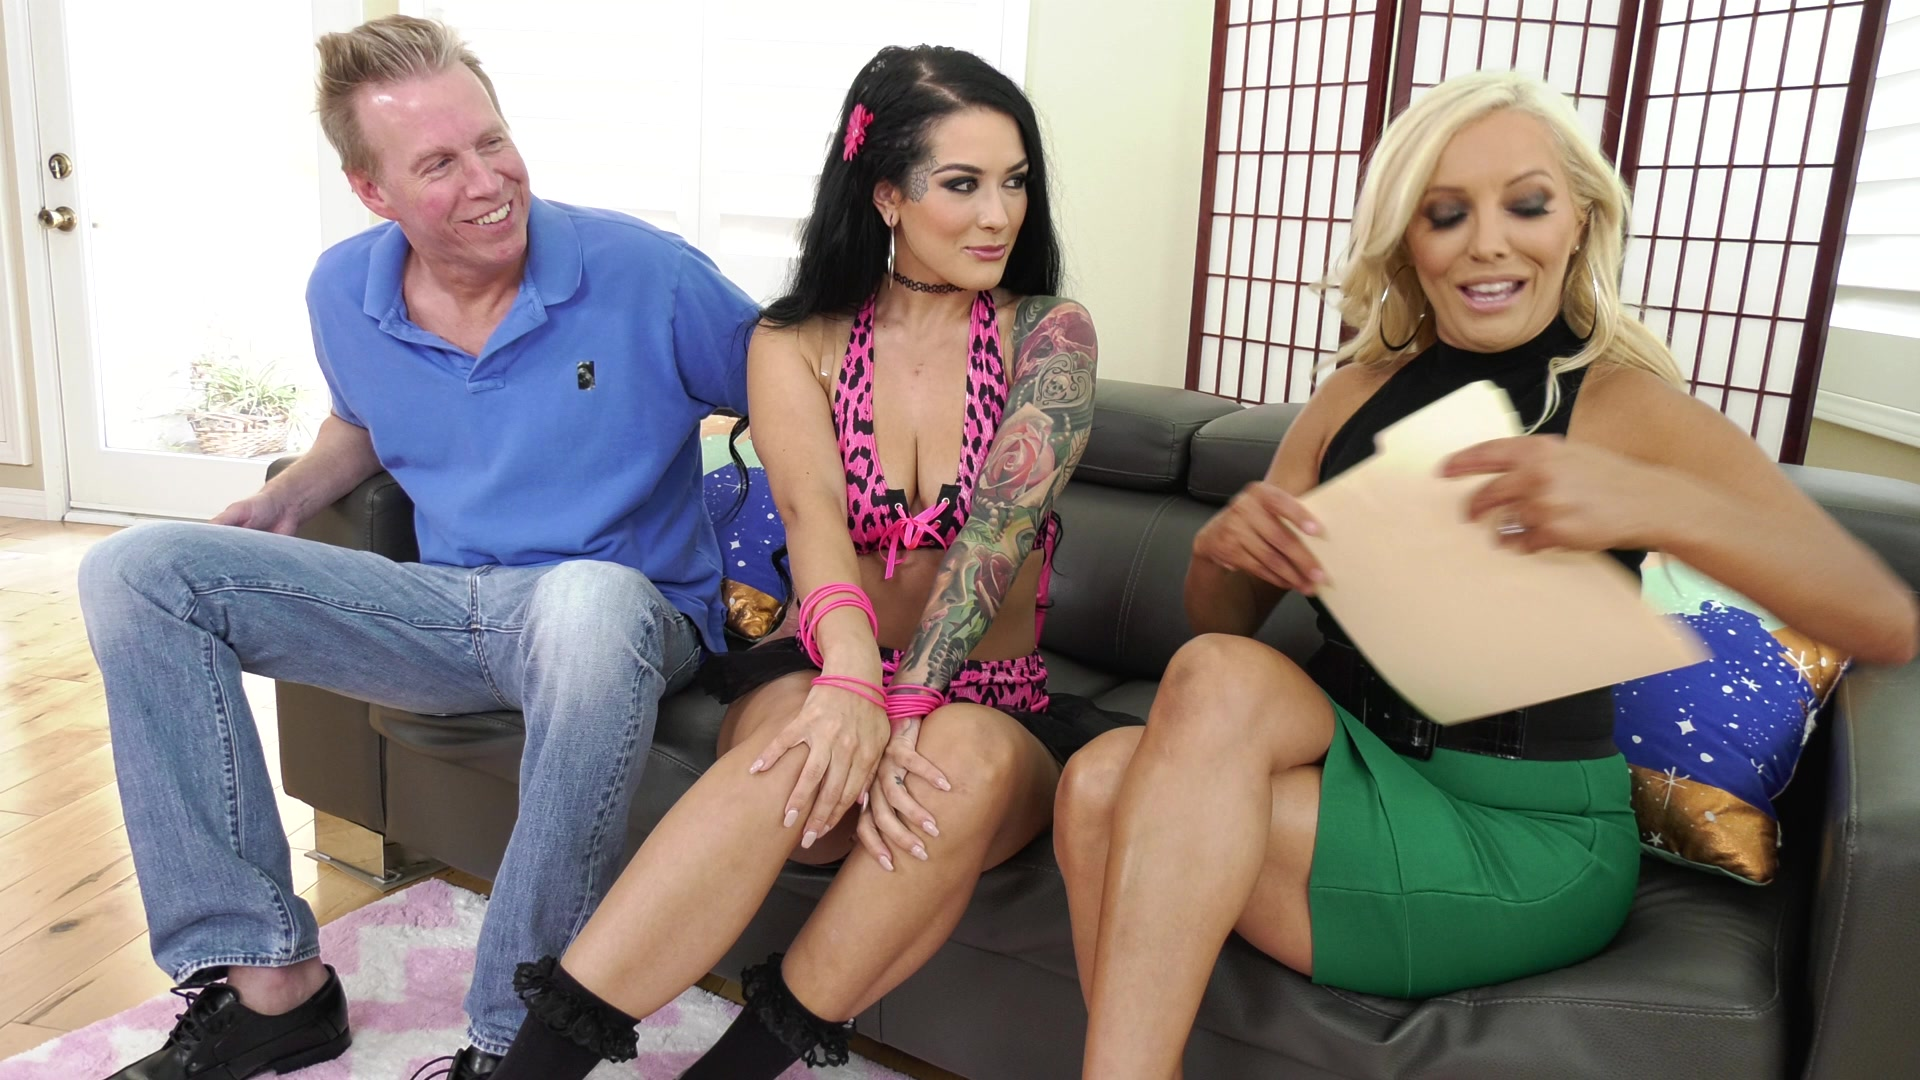 Scene with Francesca Le, Mark Wood and Katrina Jade - image 7 out of 20